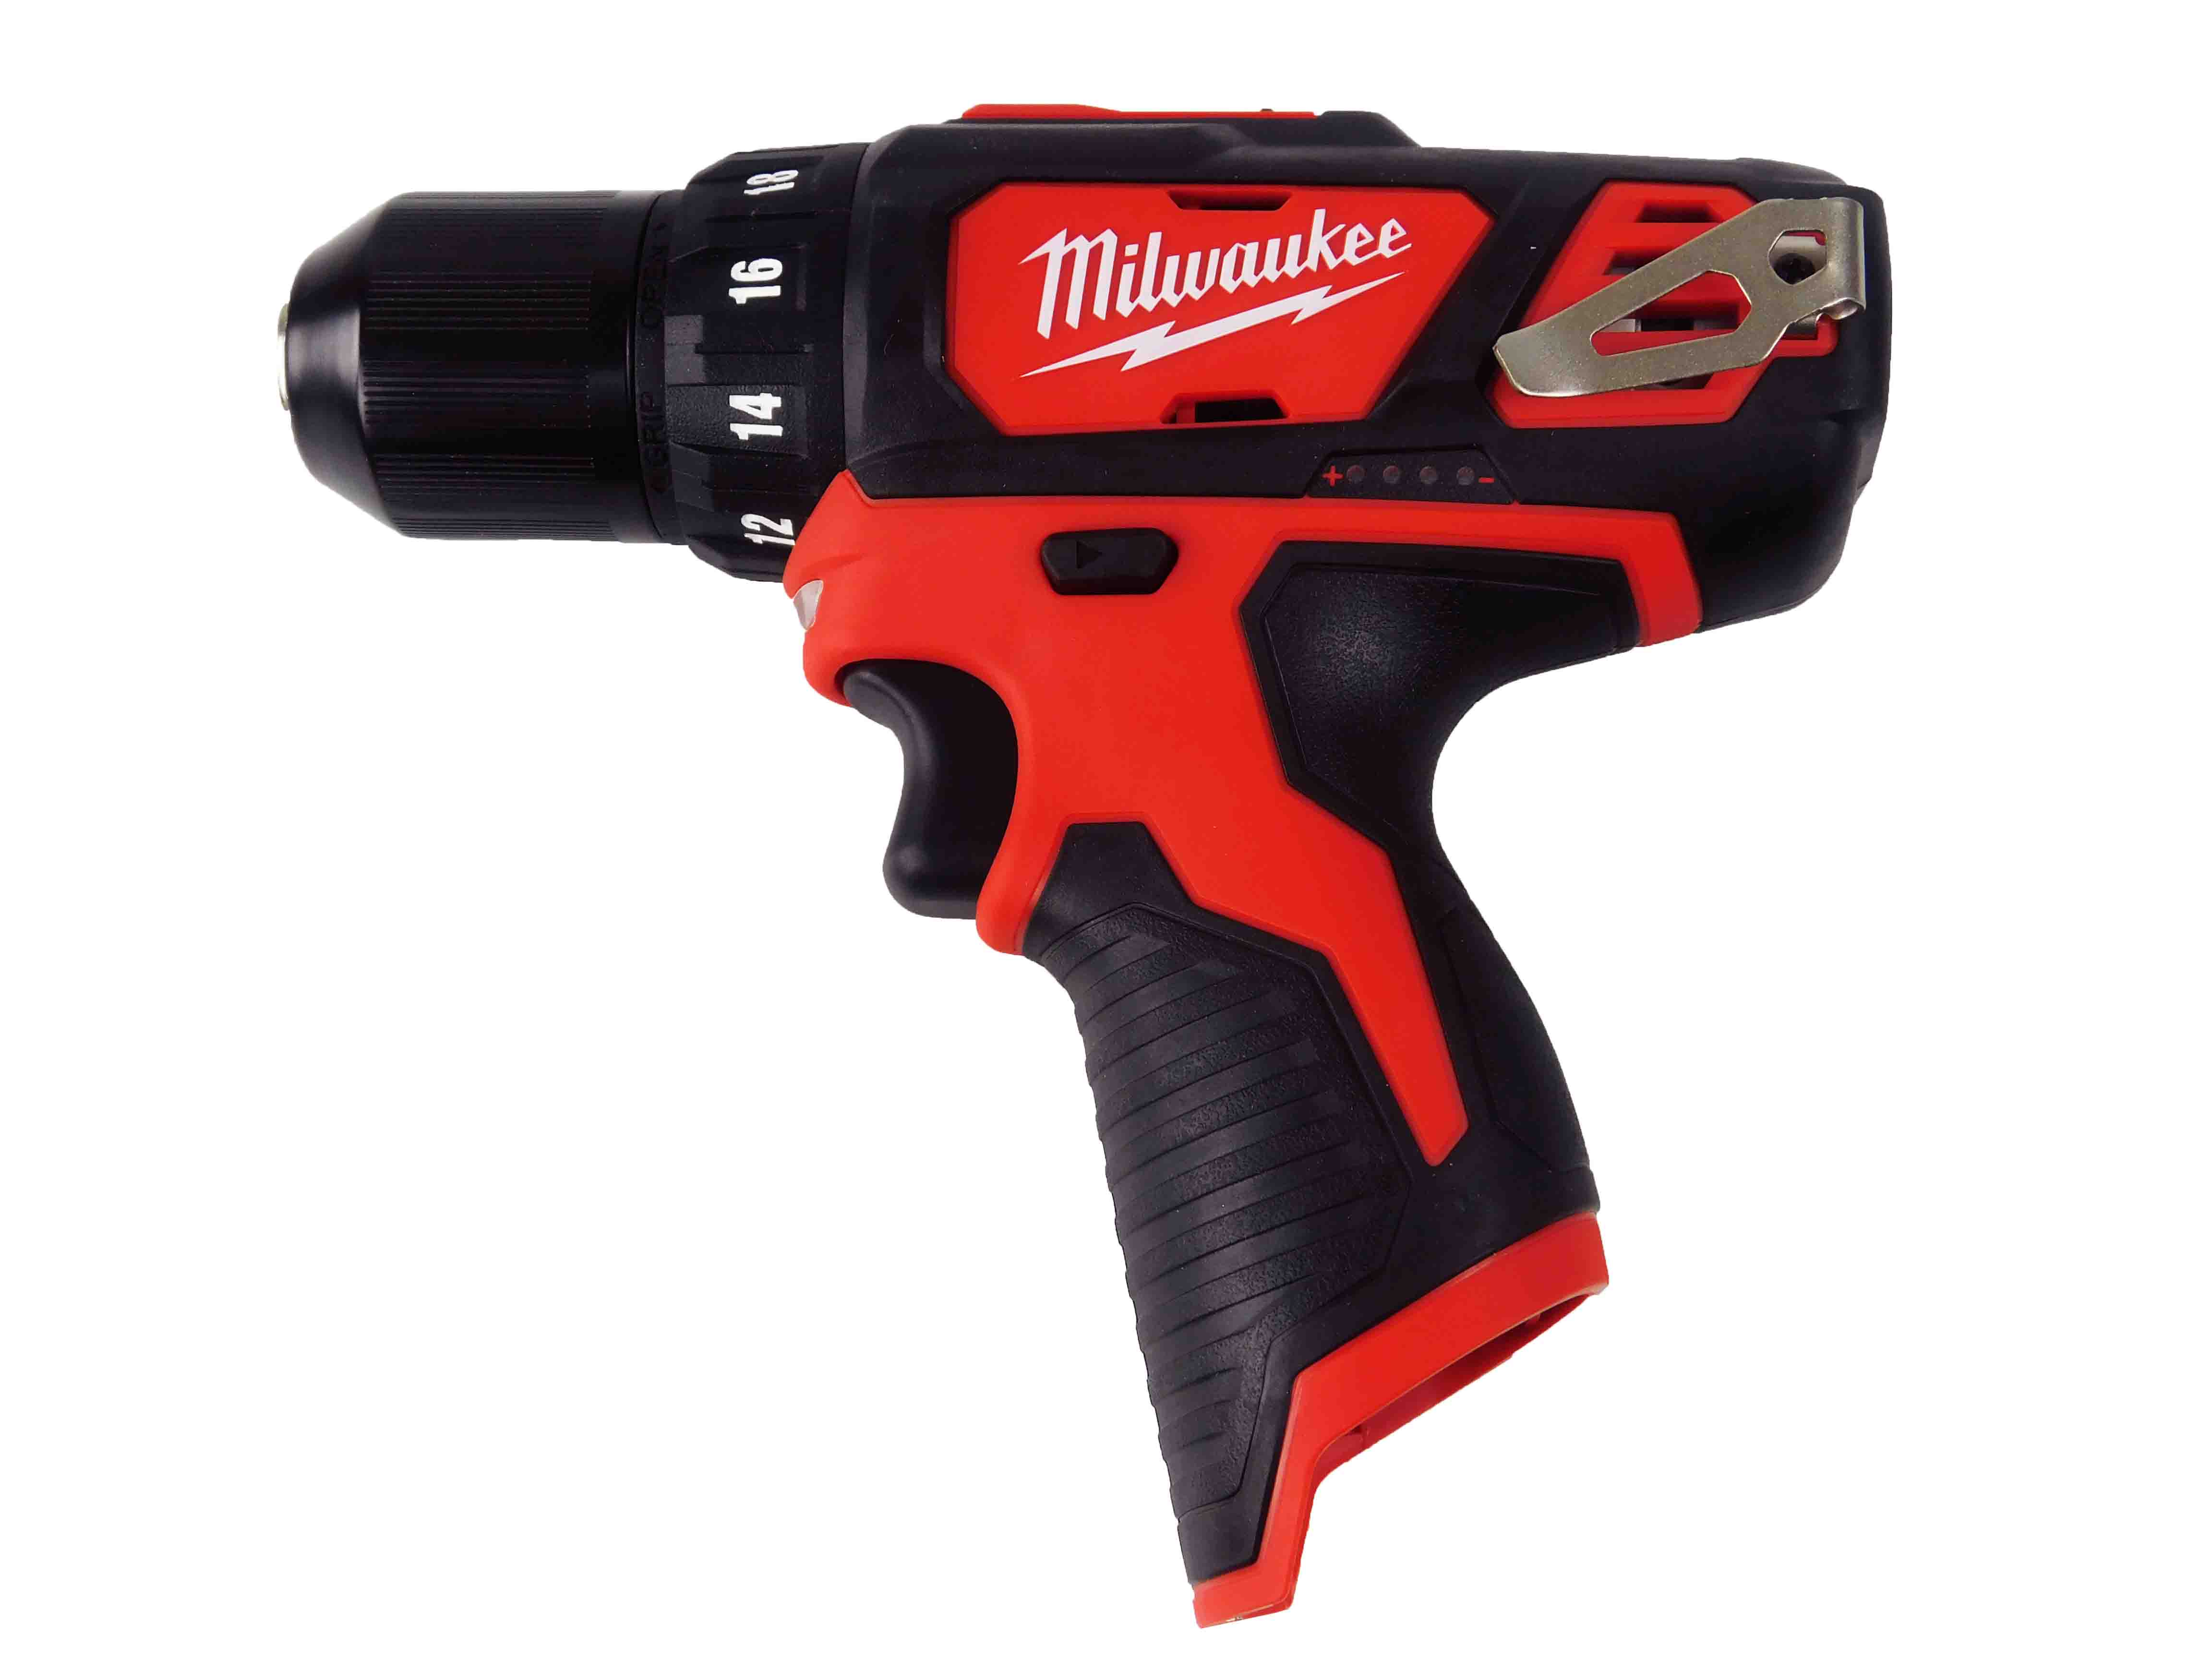 Milwaukee-2407-20-12V-M12-3-8inch-Chuck-Drill-Driver-2-Speed-image-1